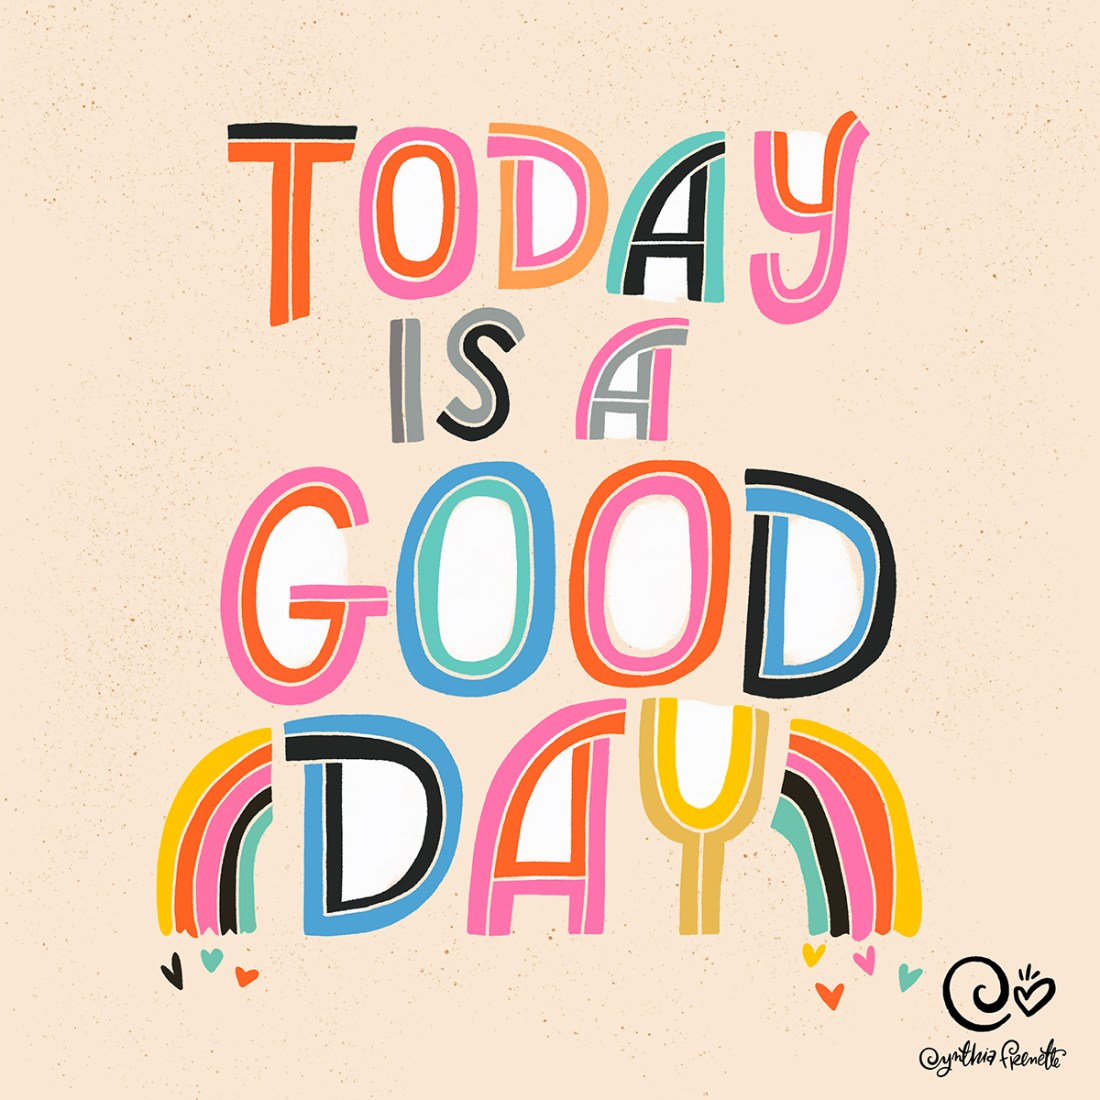 Today is a good day quote